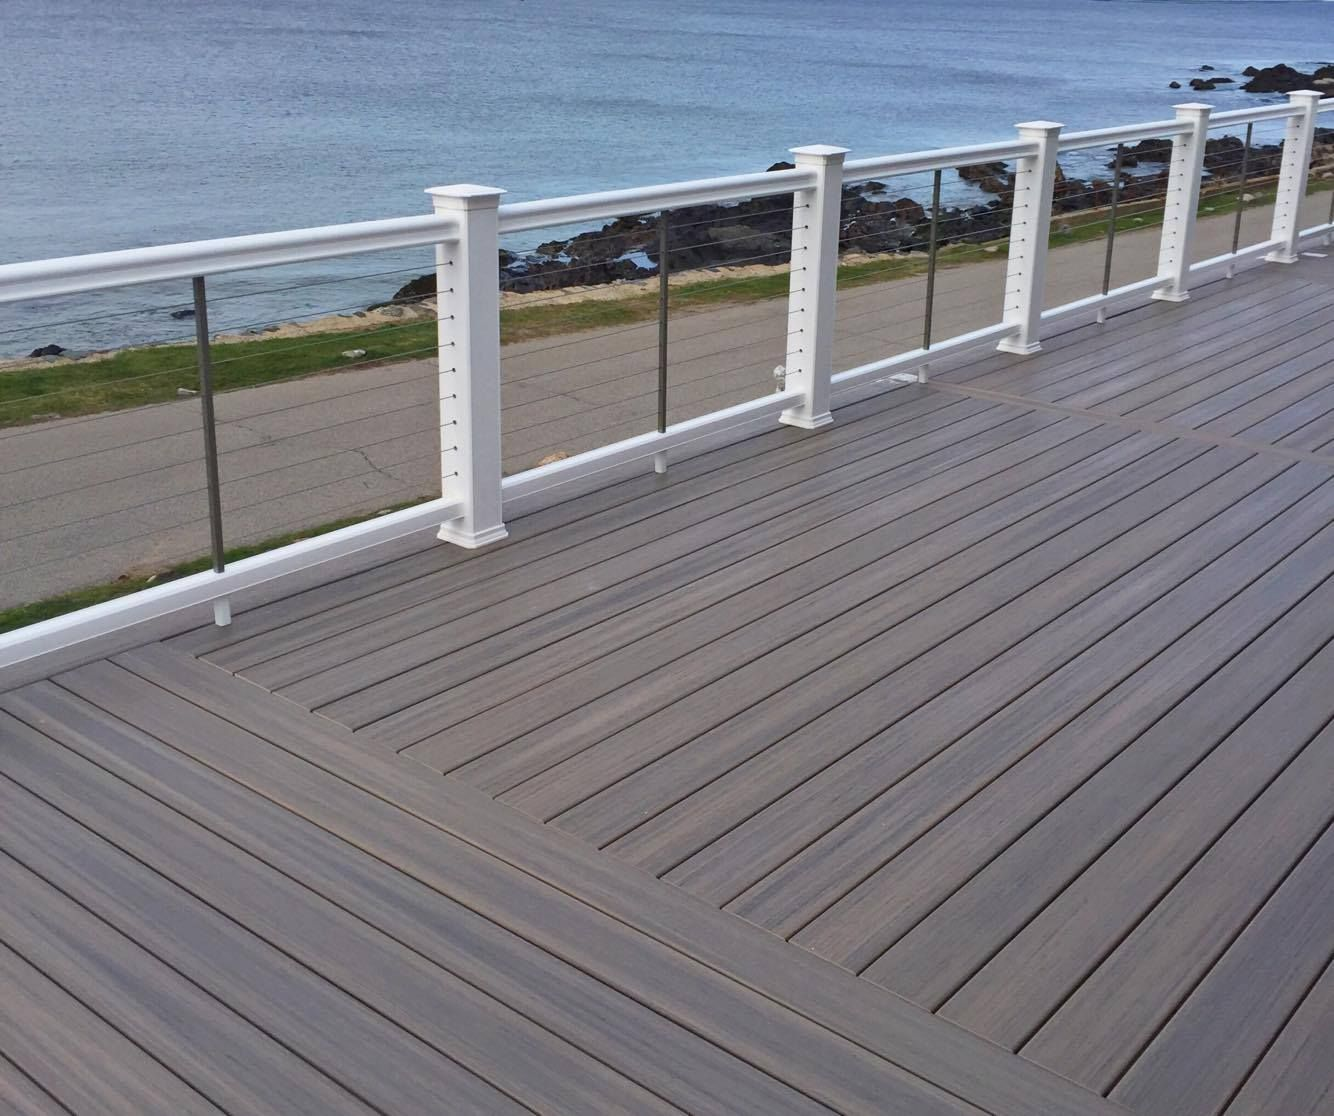 Beautiful View Even More Beautiful Deck This Fiberon Paramount Pvc Decking Is Extremely Resilient And Contains No Organic Conte Railings Outdoor Deck Fiberon